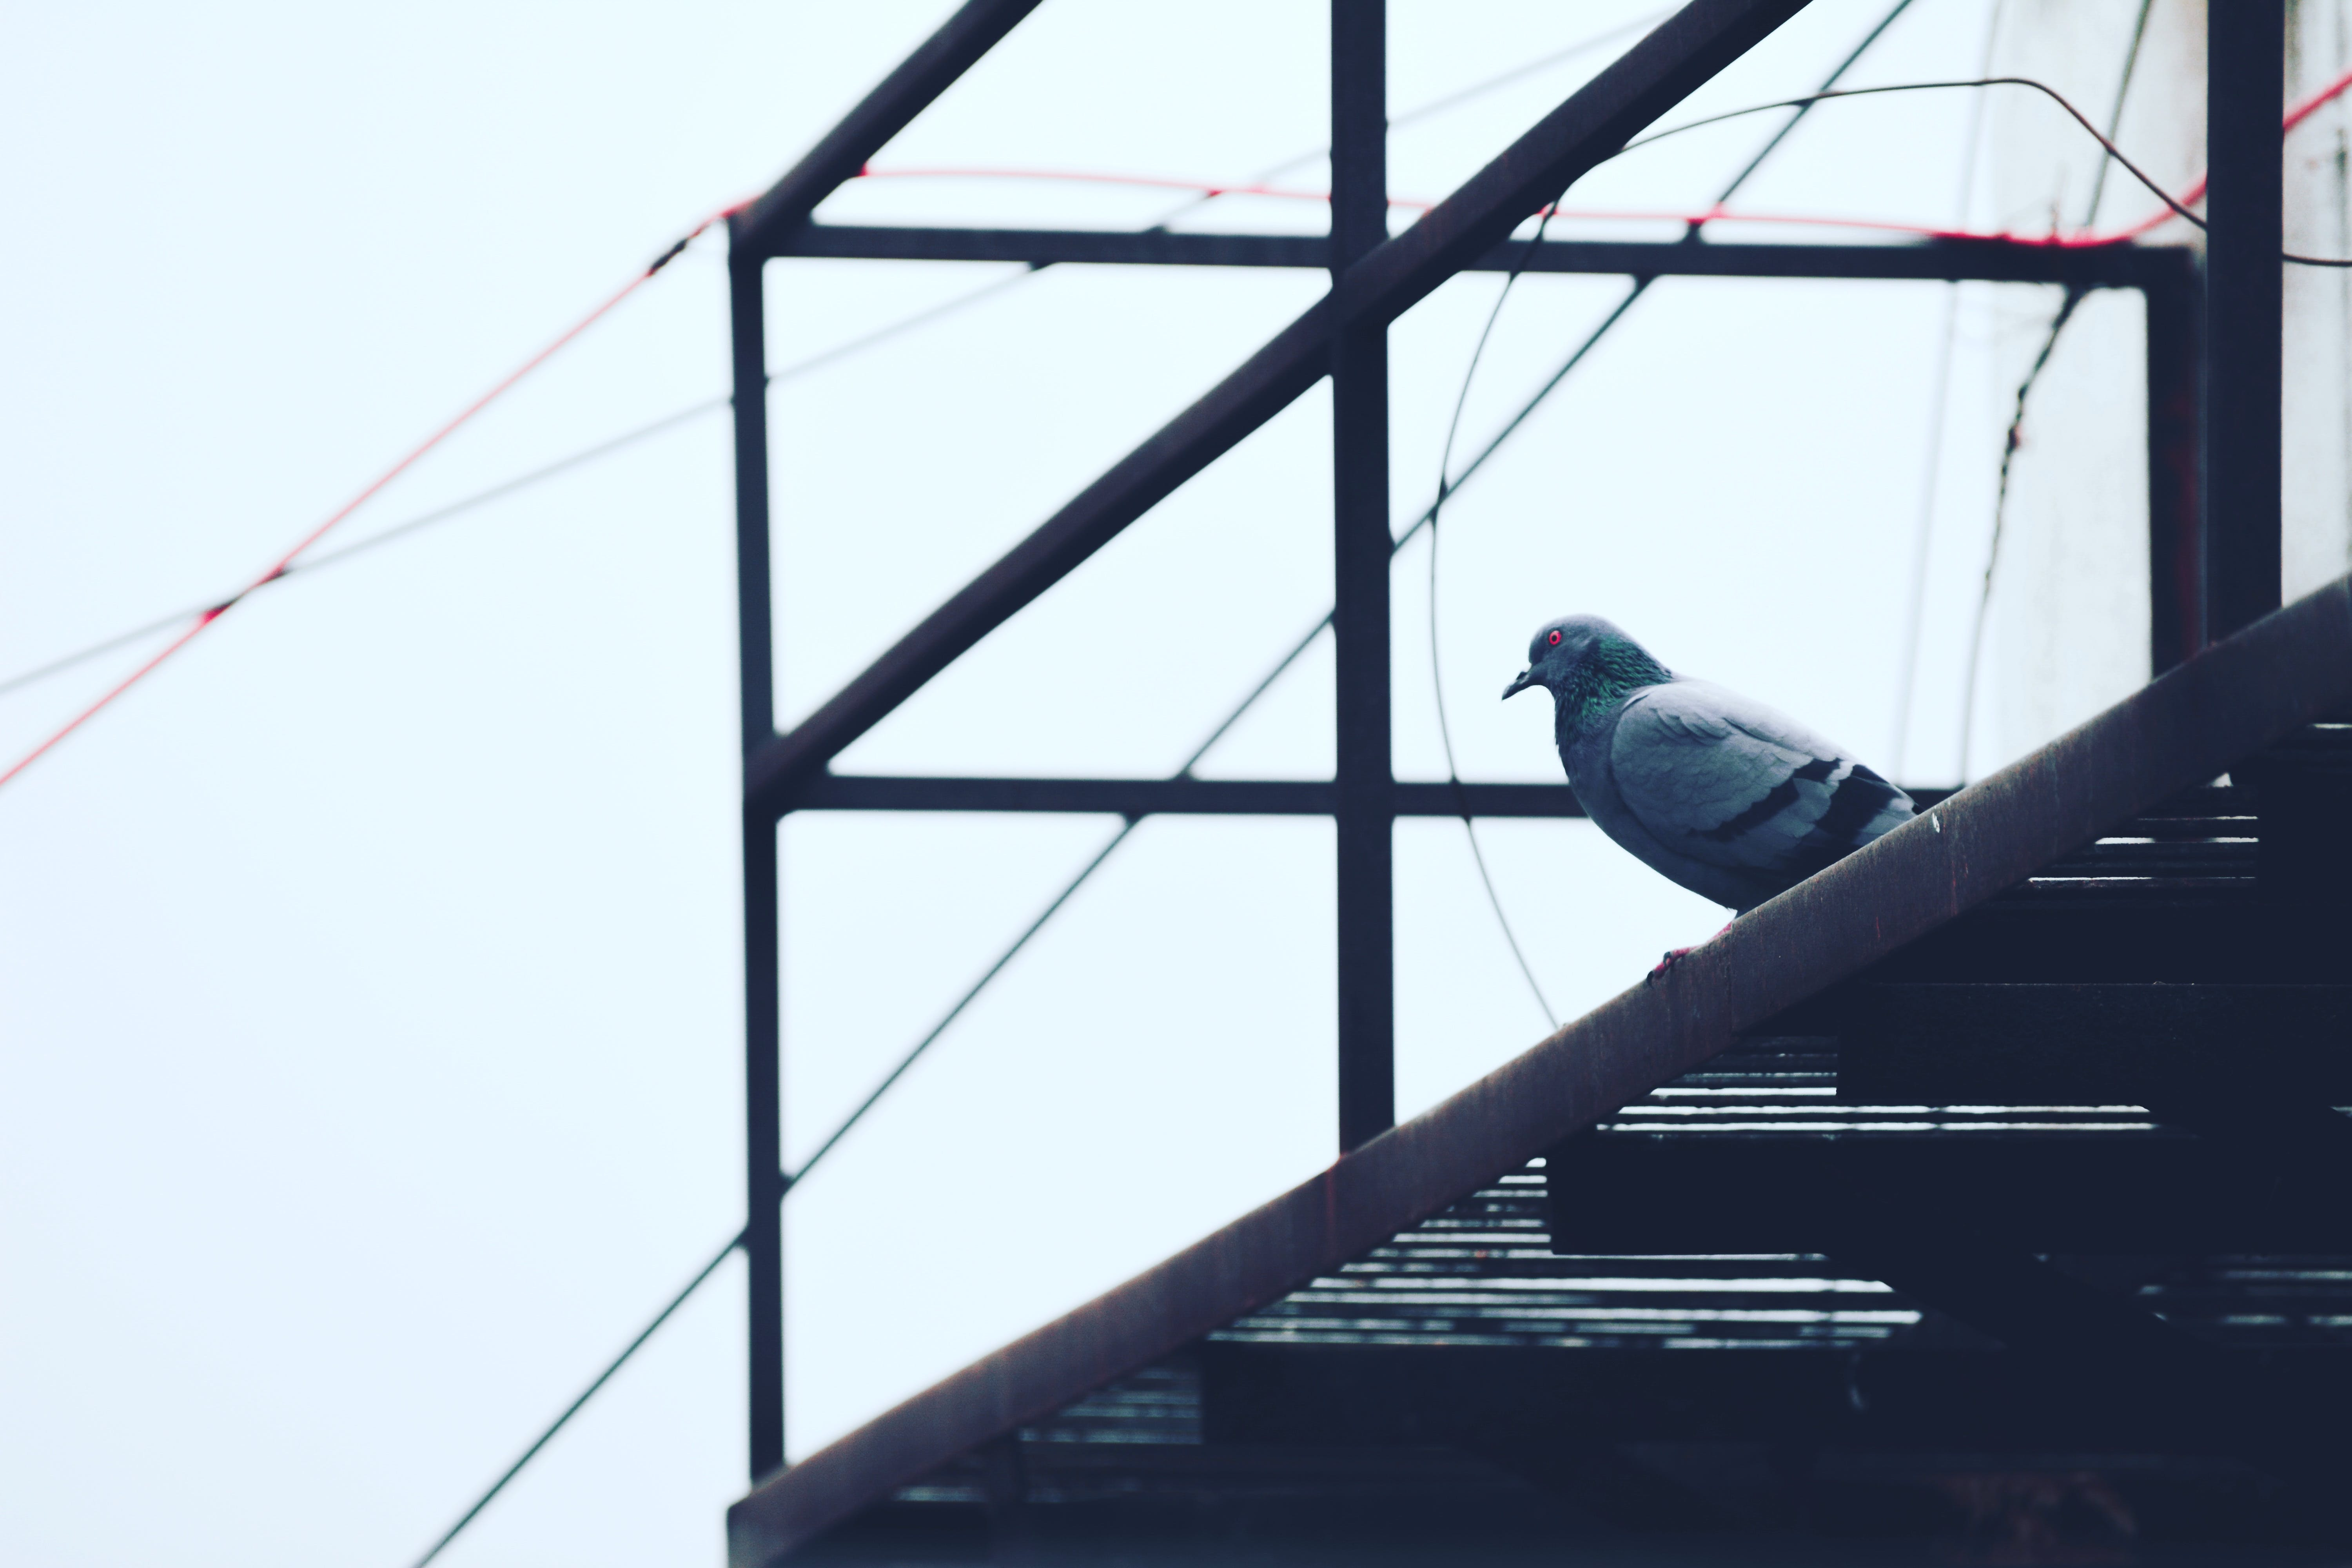 Gray Pigeon on Black Metal Frame